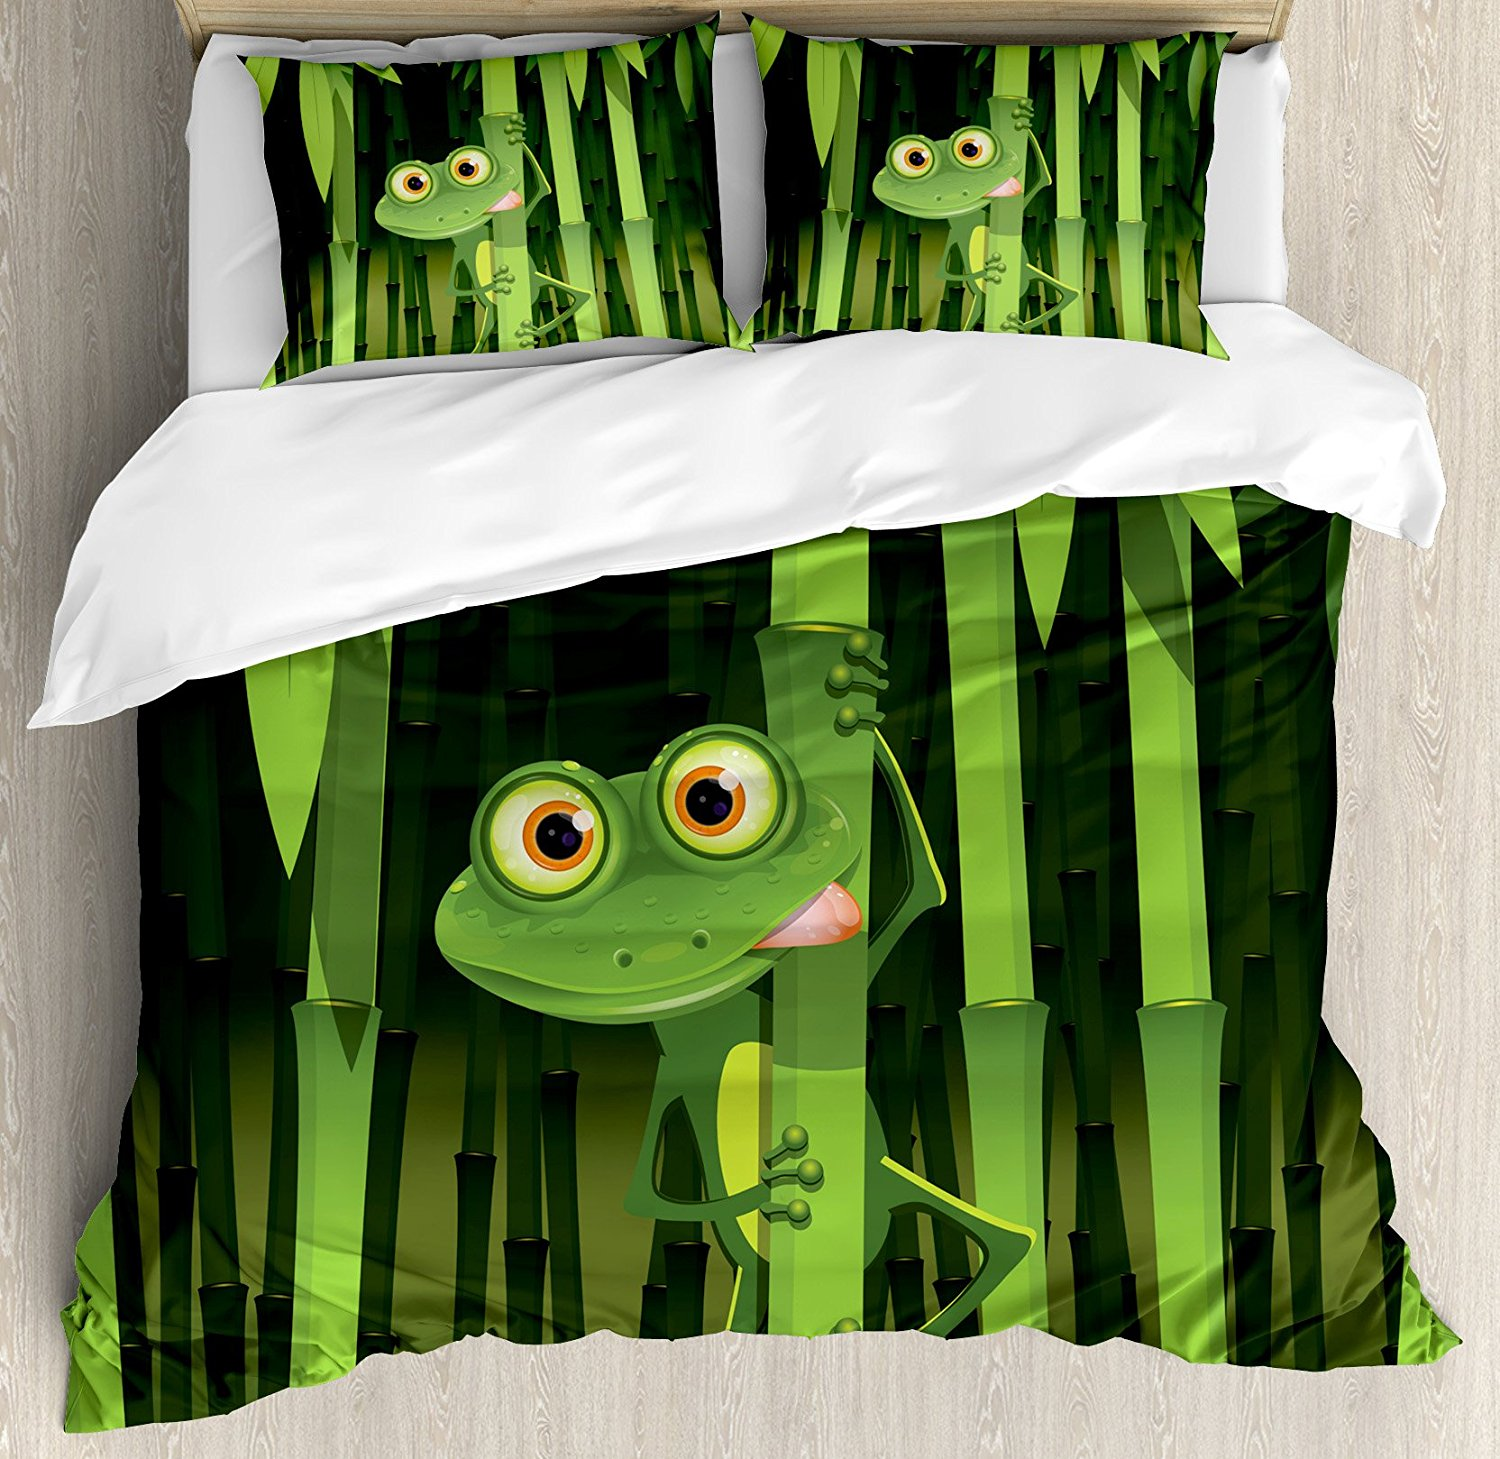 Animal Duvet Cover Set Funny Illustration of Friendly Fun Frog on Stem of the Bamboo Jungle Trees Cute Nature Bedding Set Green